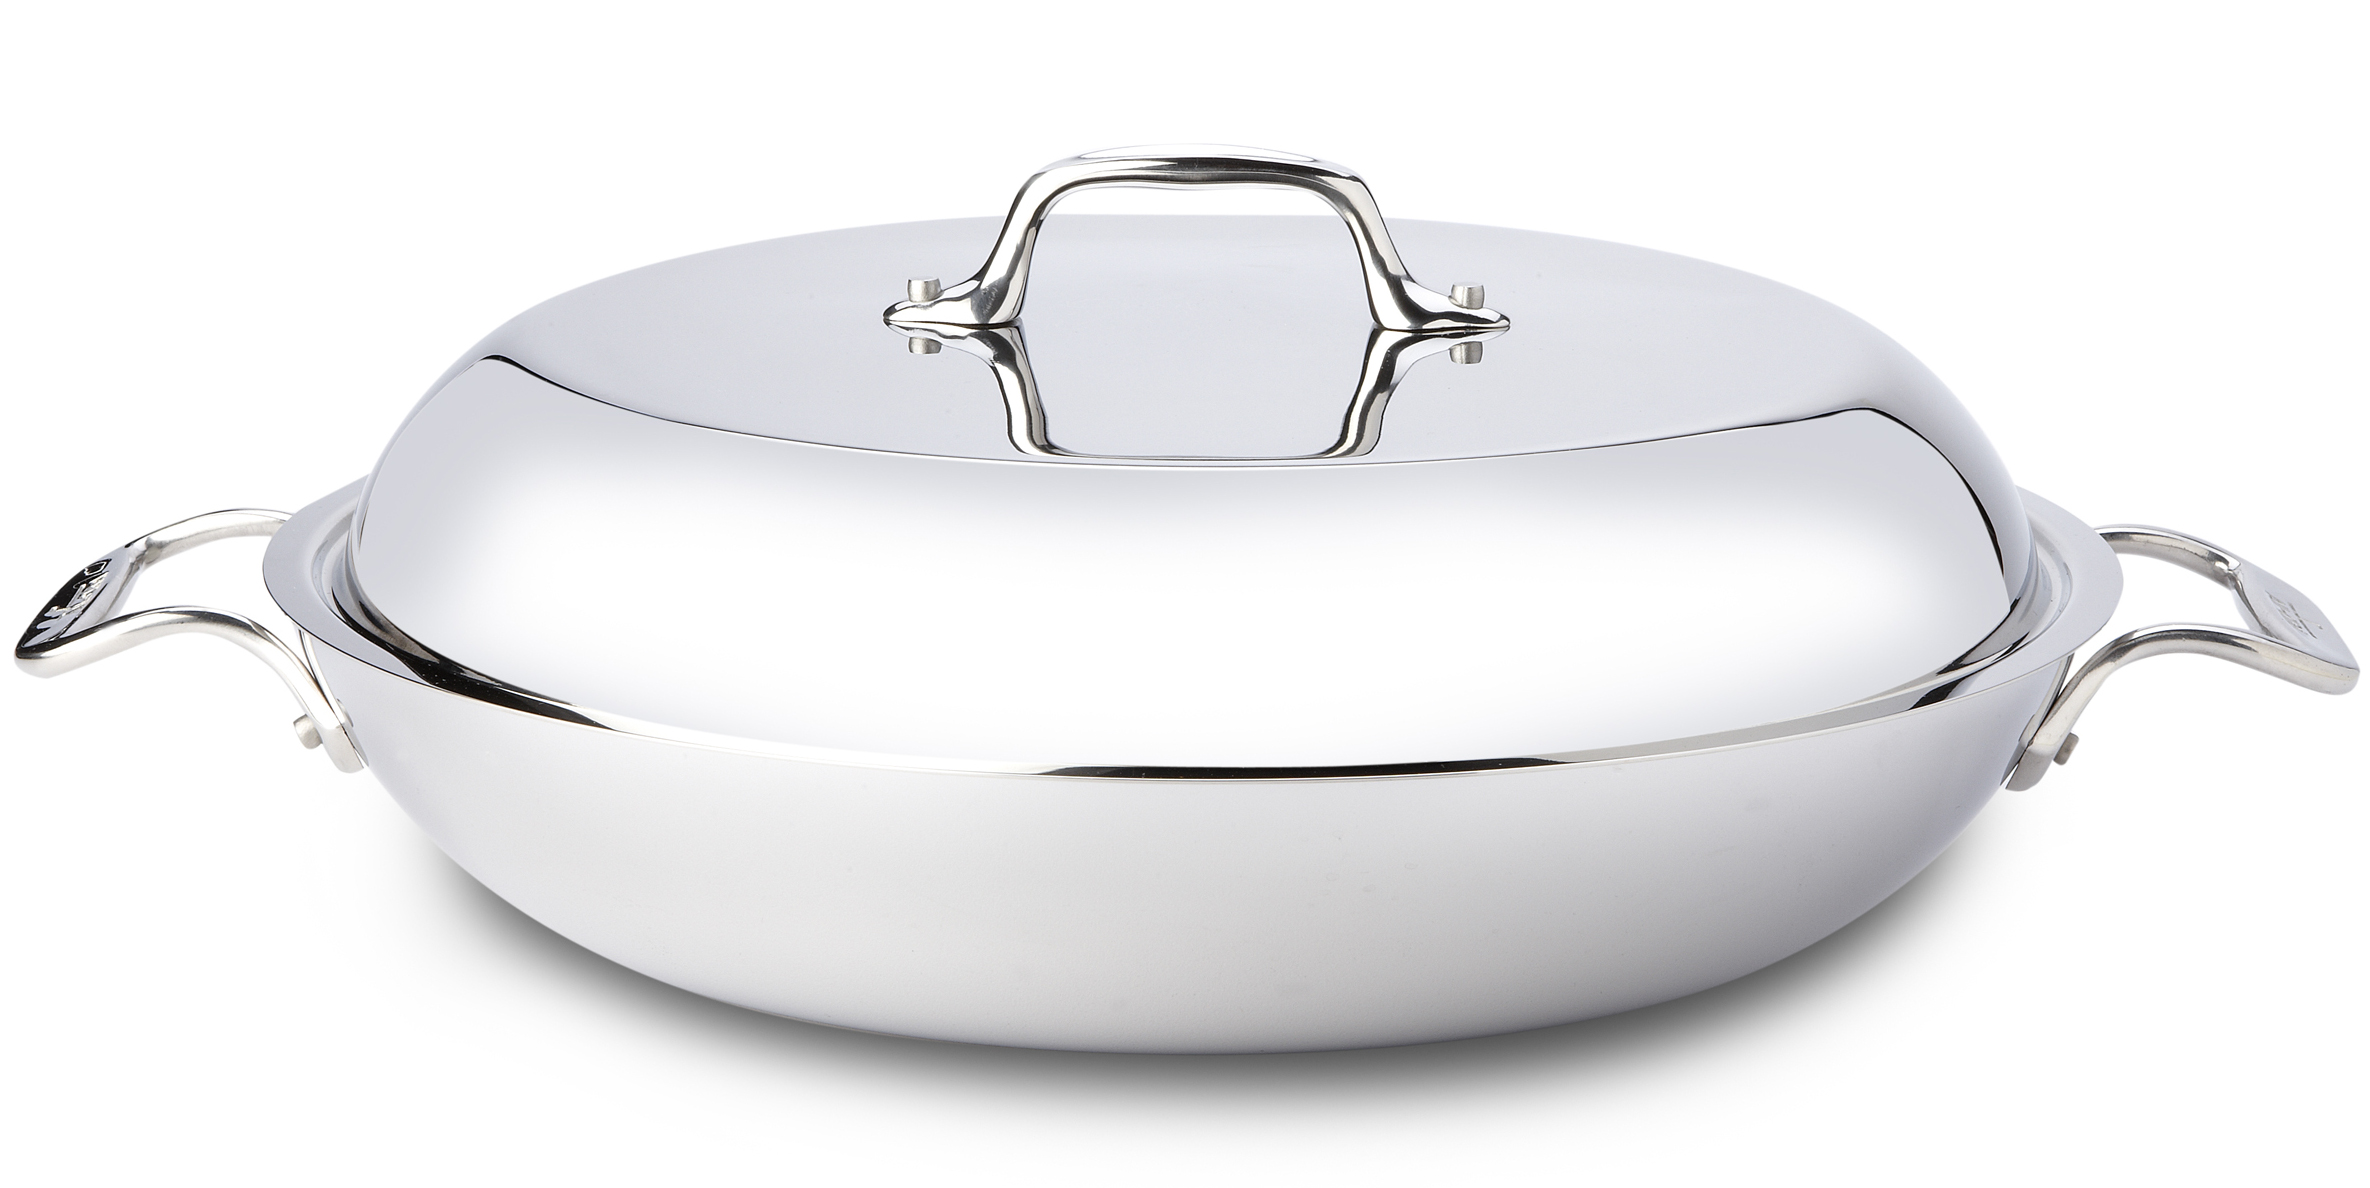 All-Clad Stainless Steel Braiser With Domed Lid, 4 Quart